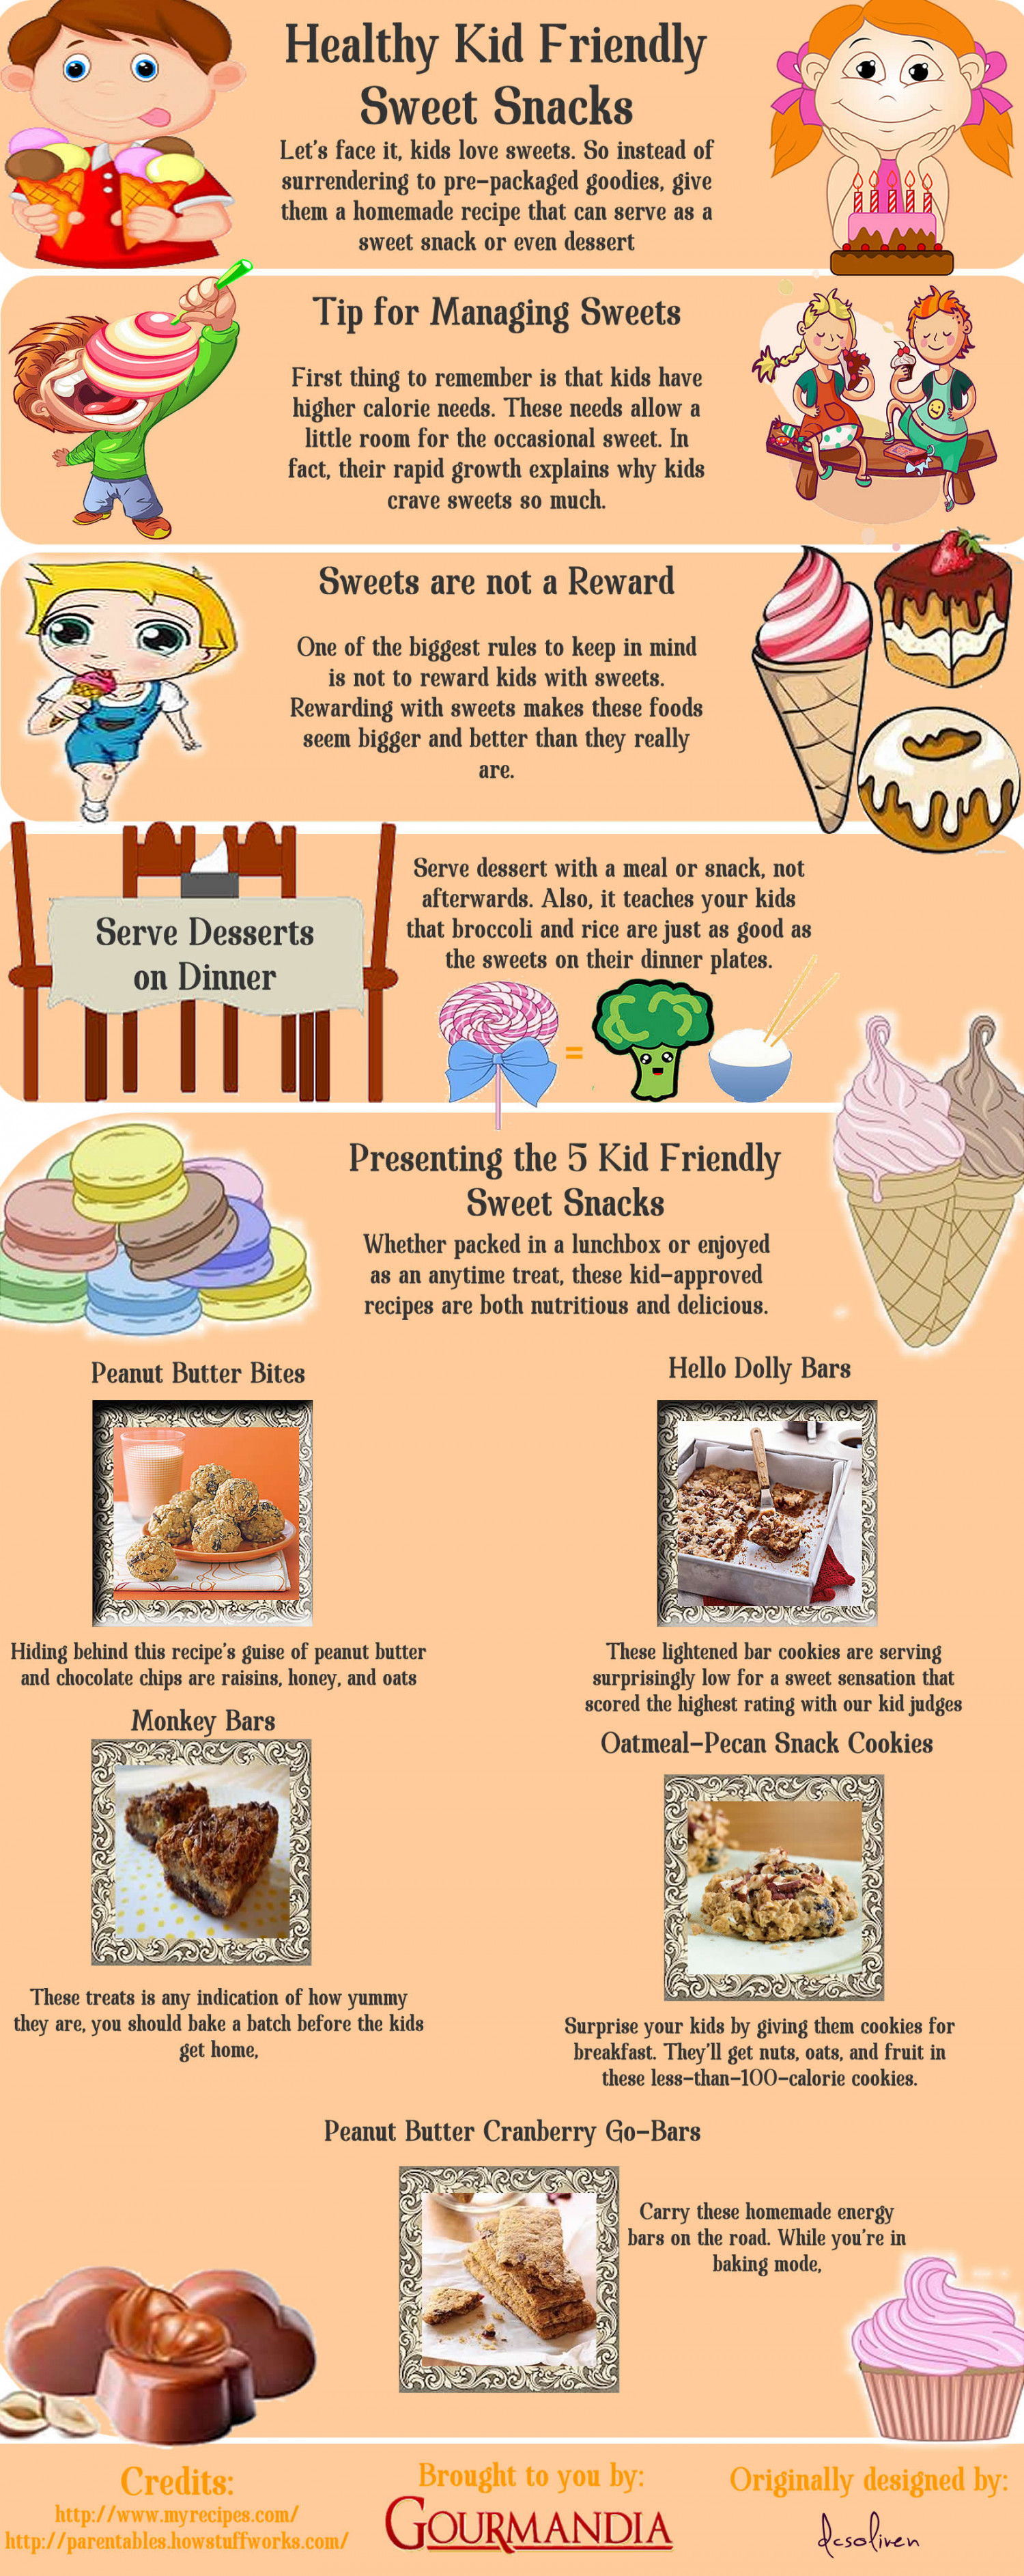 Healthy Kid-Friendly Sweet Snacks Infographic